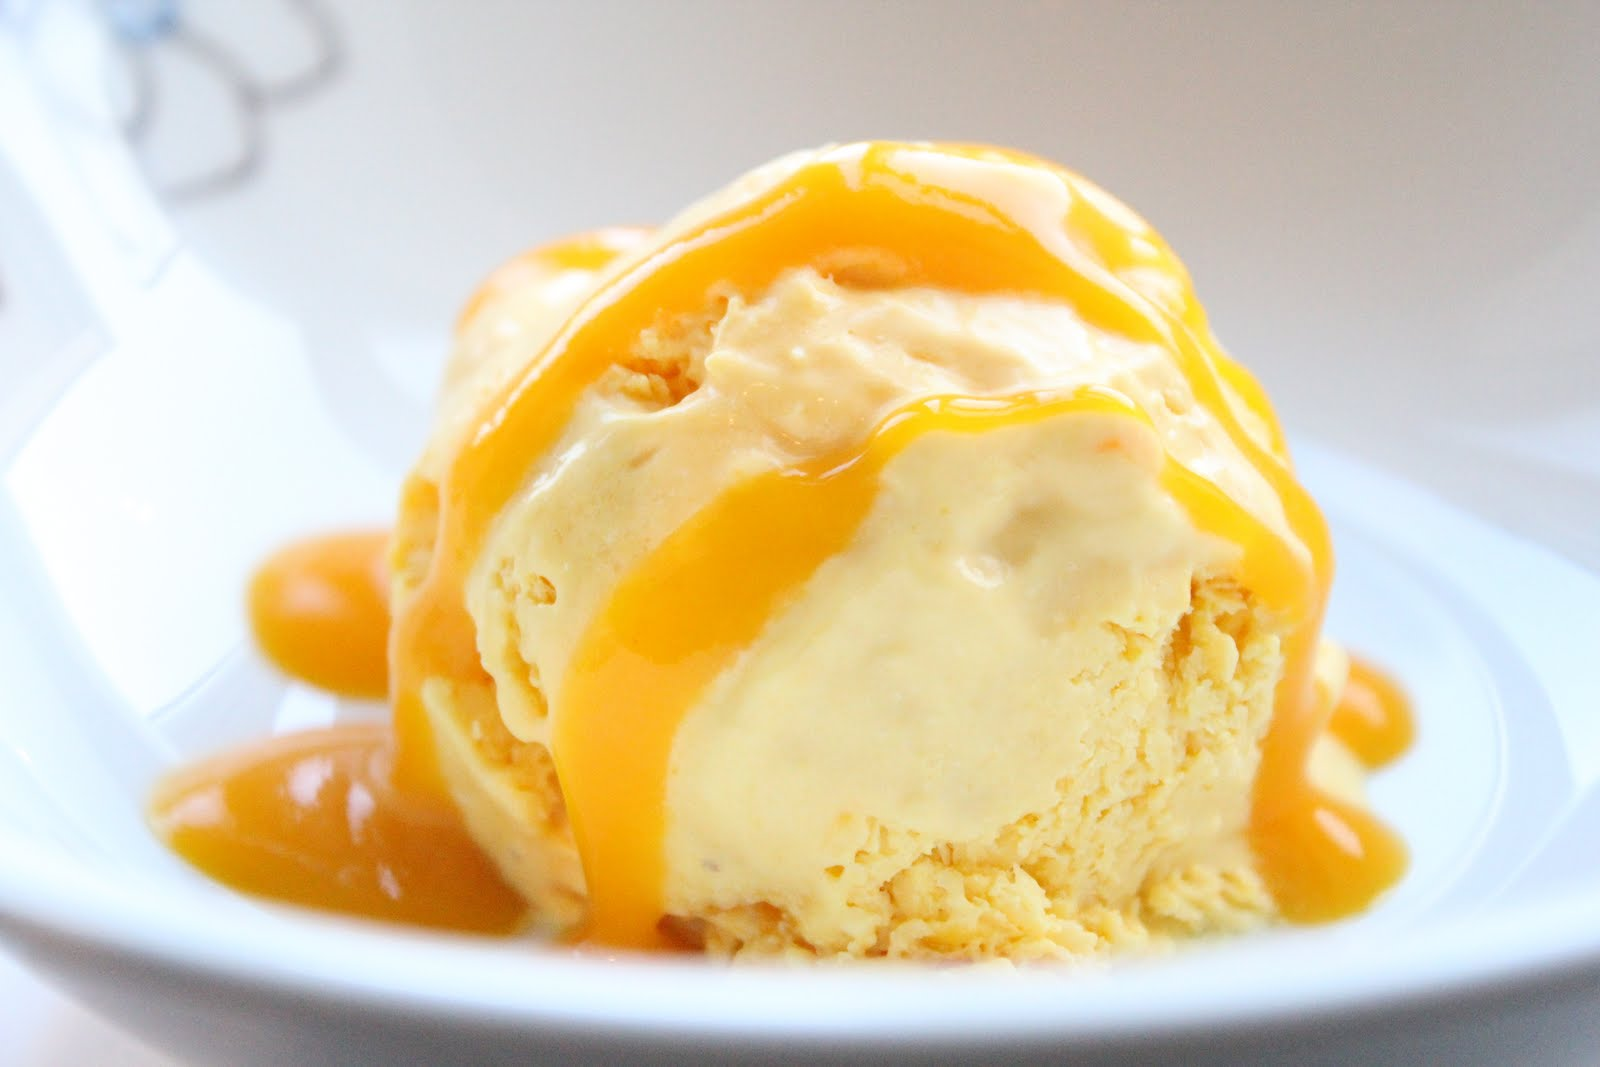 Mango Ice-Cream - Ice Cream Photo (34732993) - Fanpop